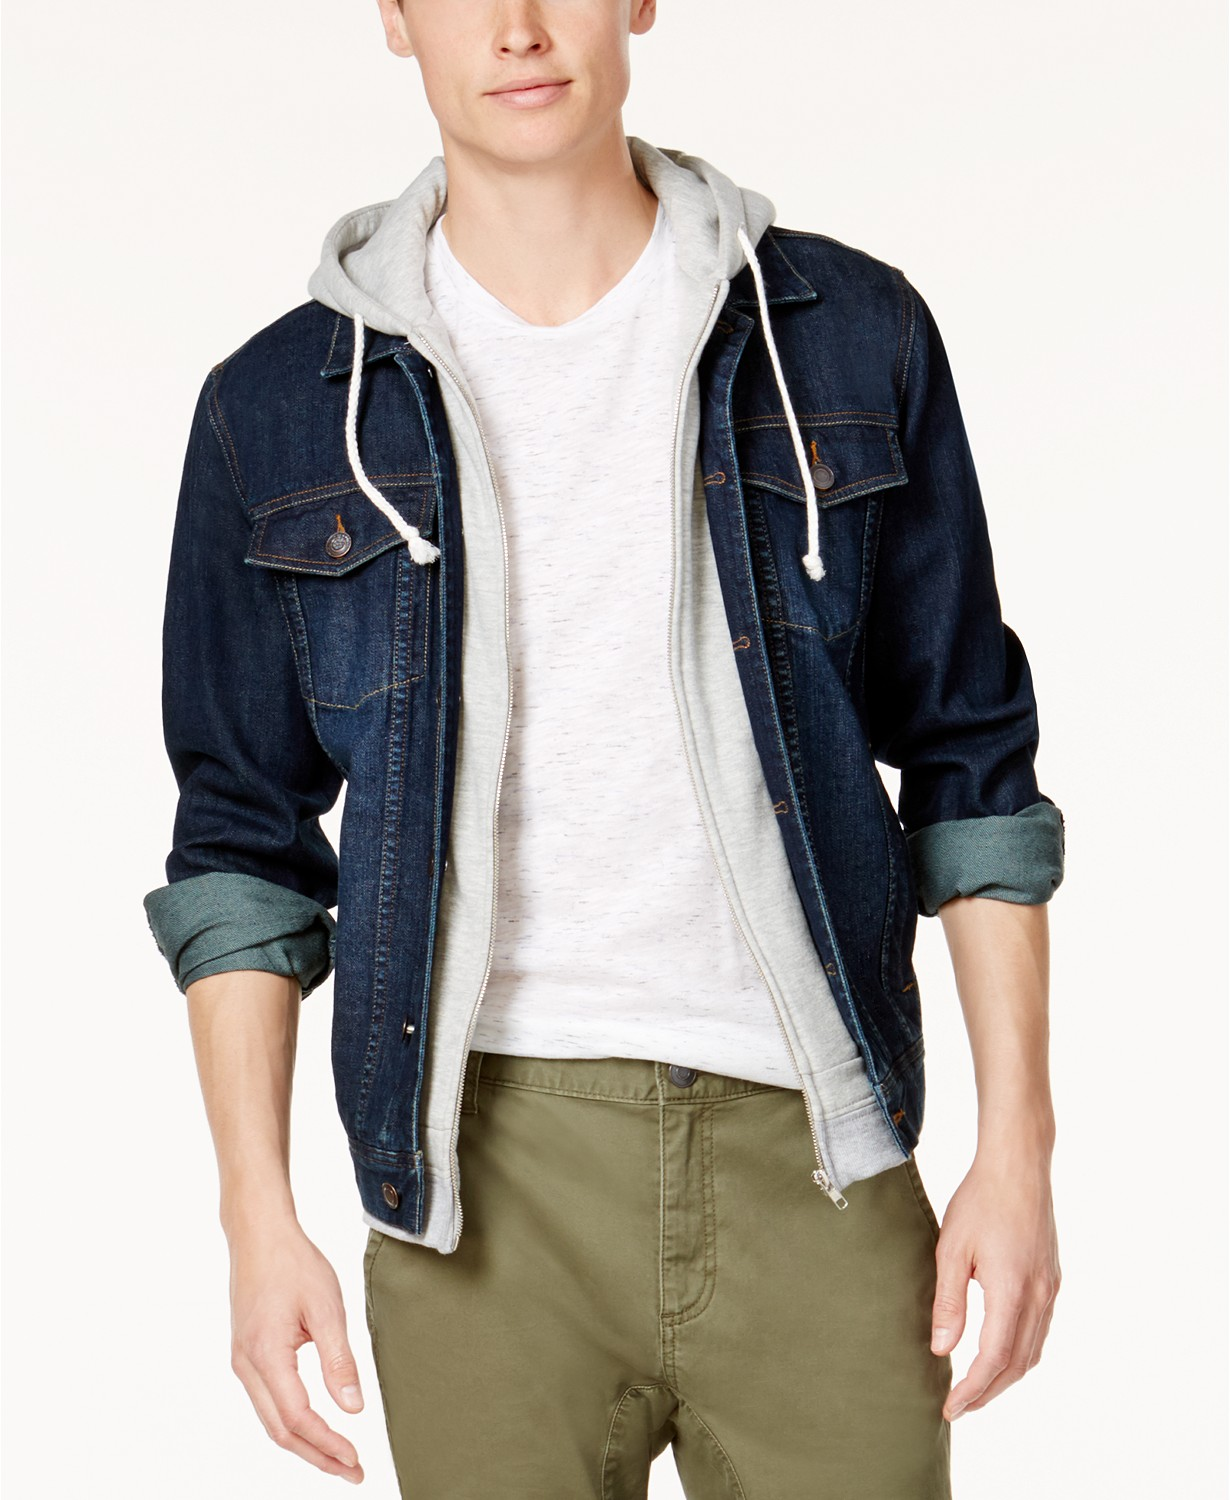 American Rag Mens Layered Hooded Denim Jacket